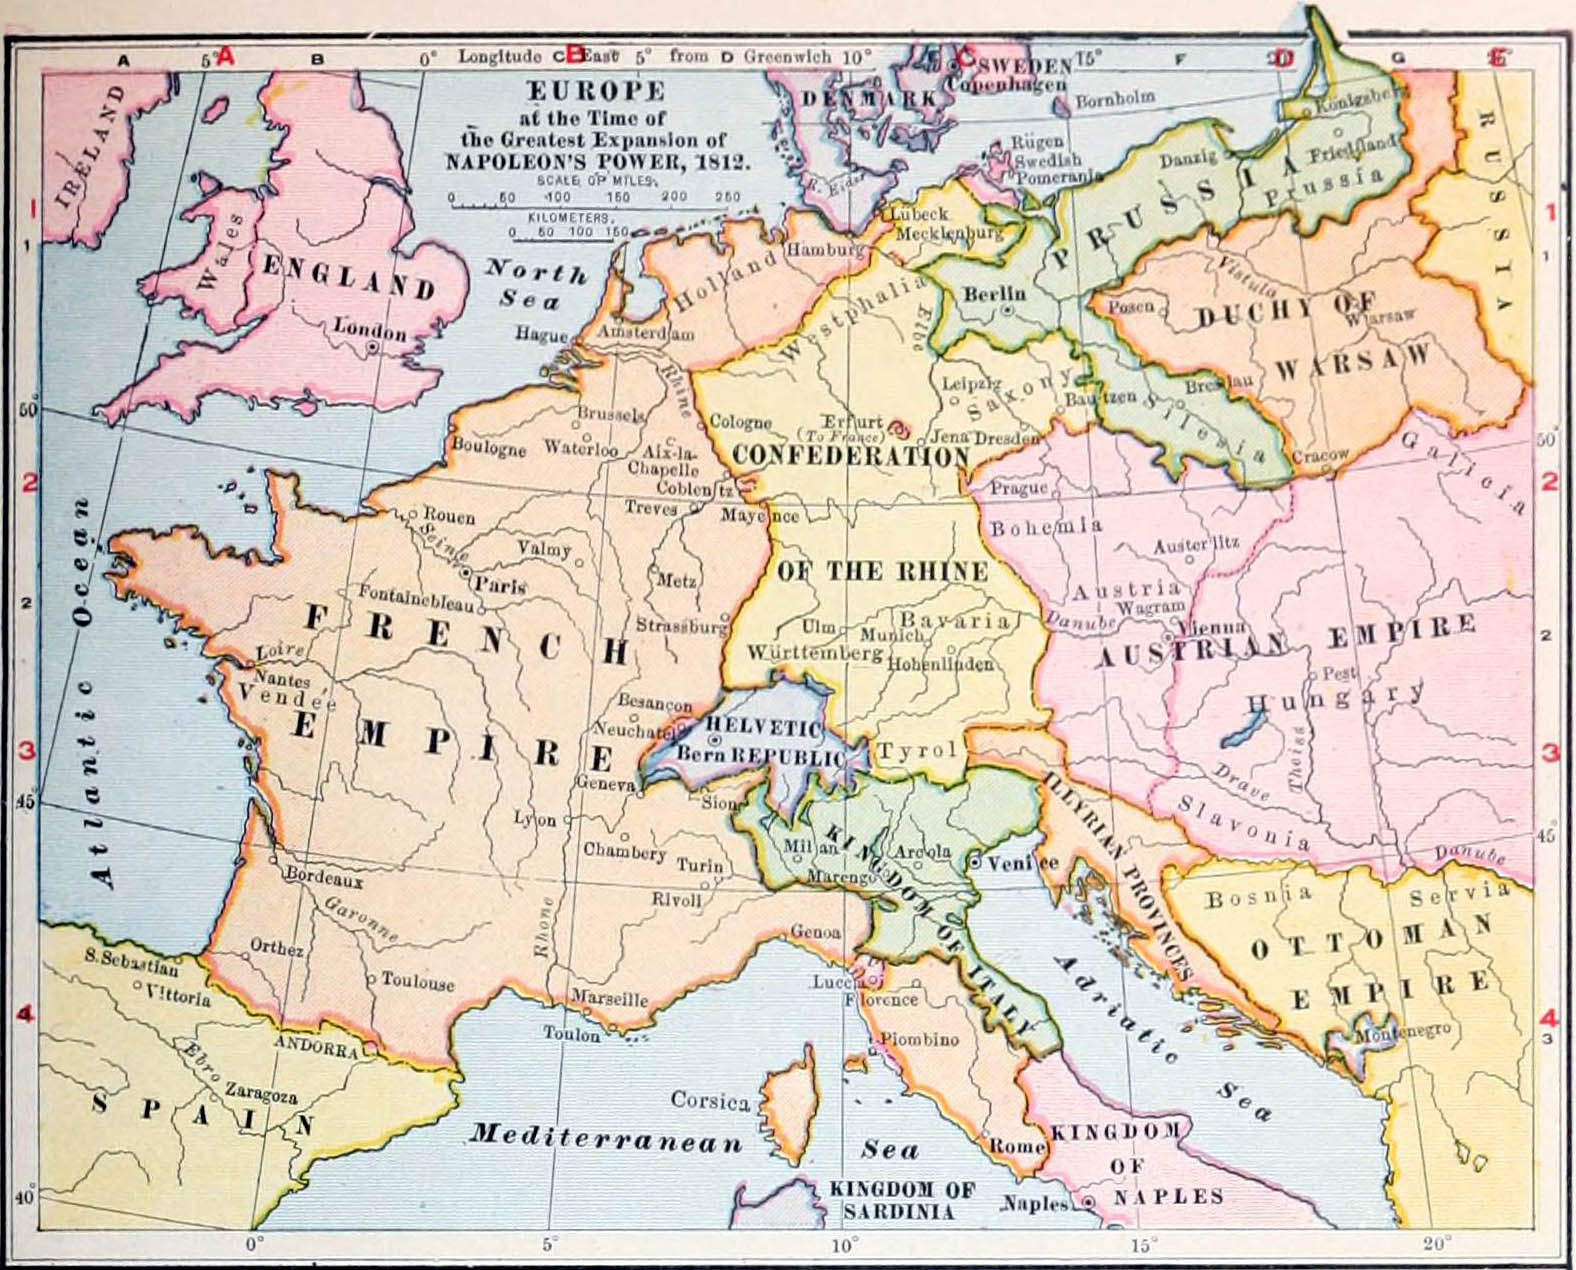 FileNIE 1905 Europe Time Of Napoleons Greatest Powerjpg - Map Of Mountain Ranges In Us